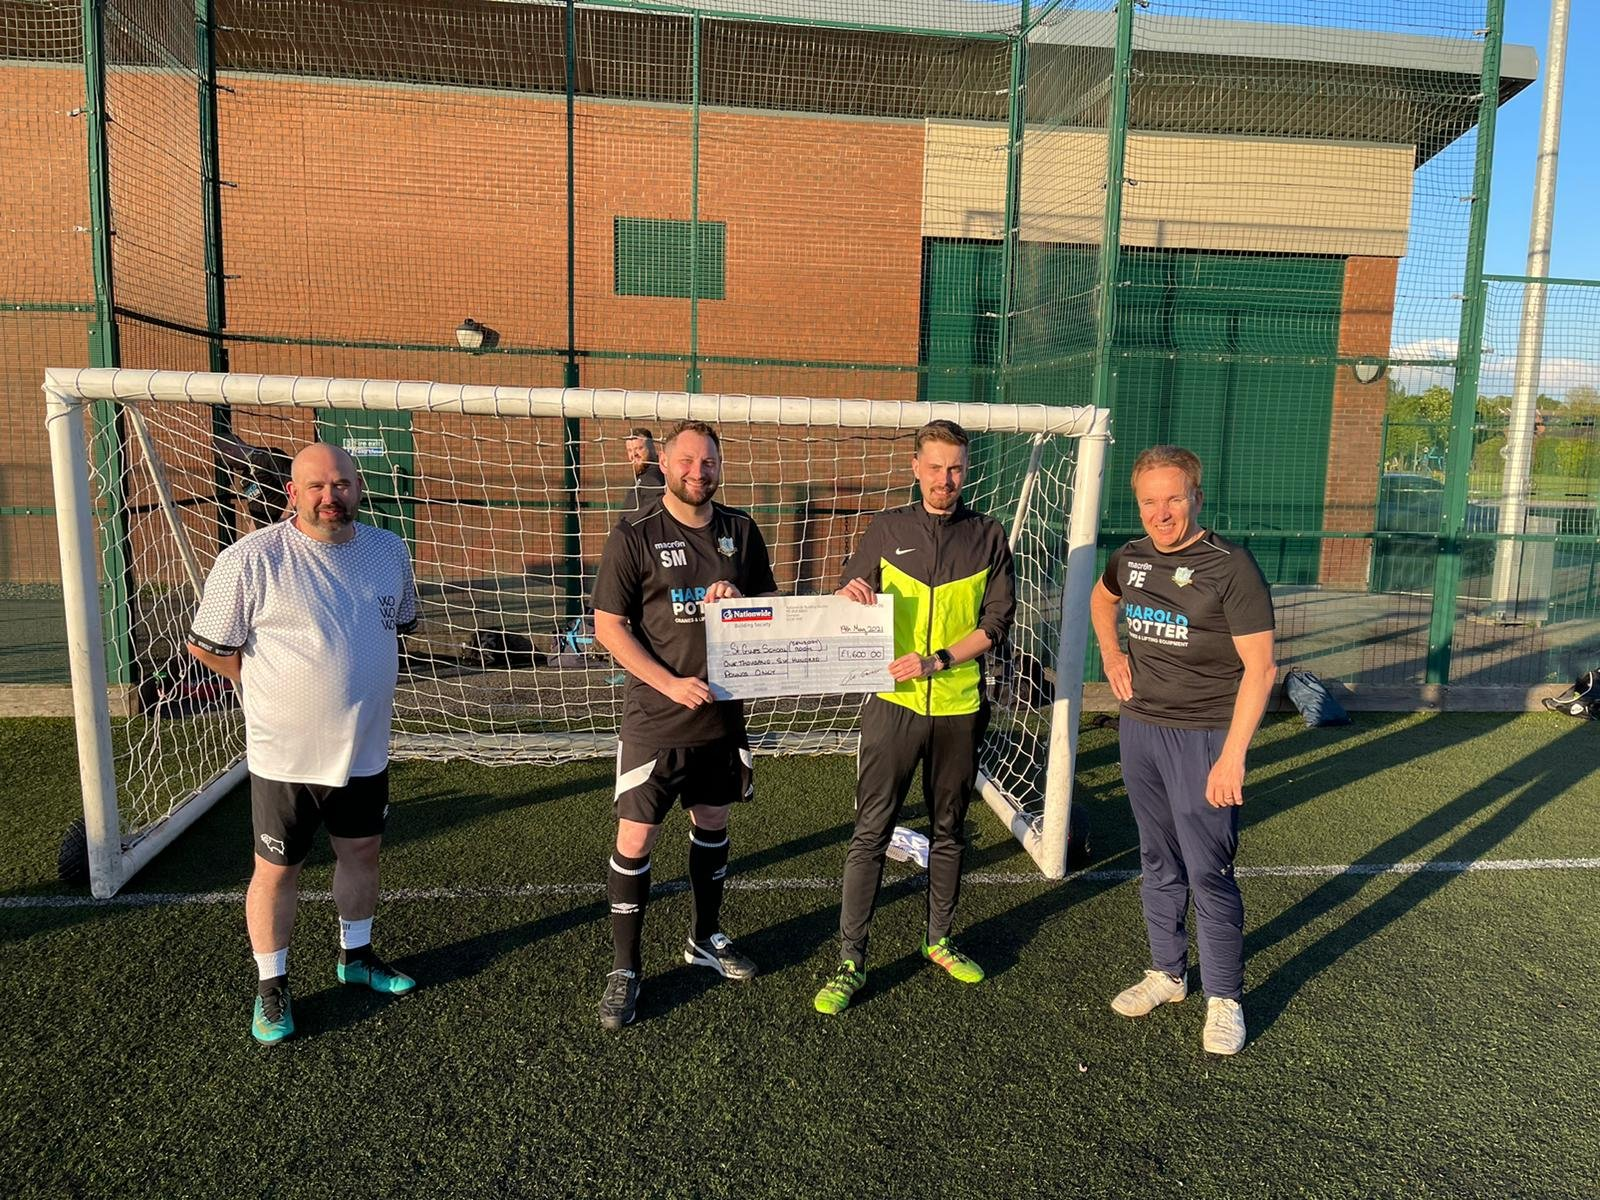 Perfect match as charity football team and Derbyshire business raise more than £1,500 for city special school's sensory room